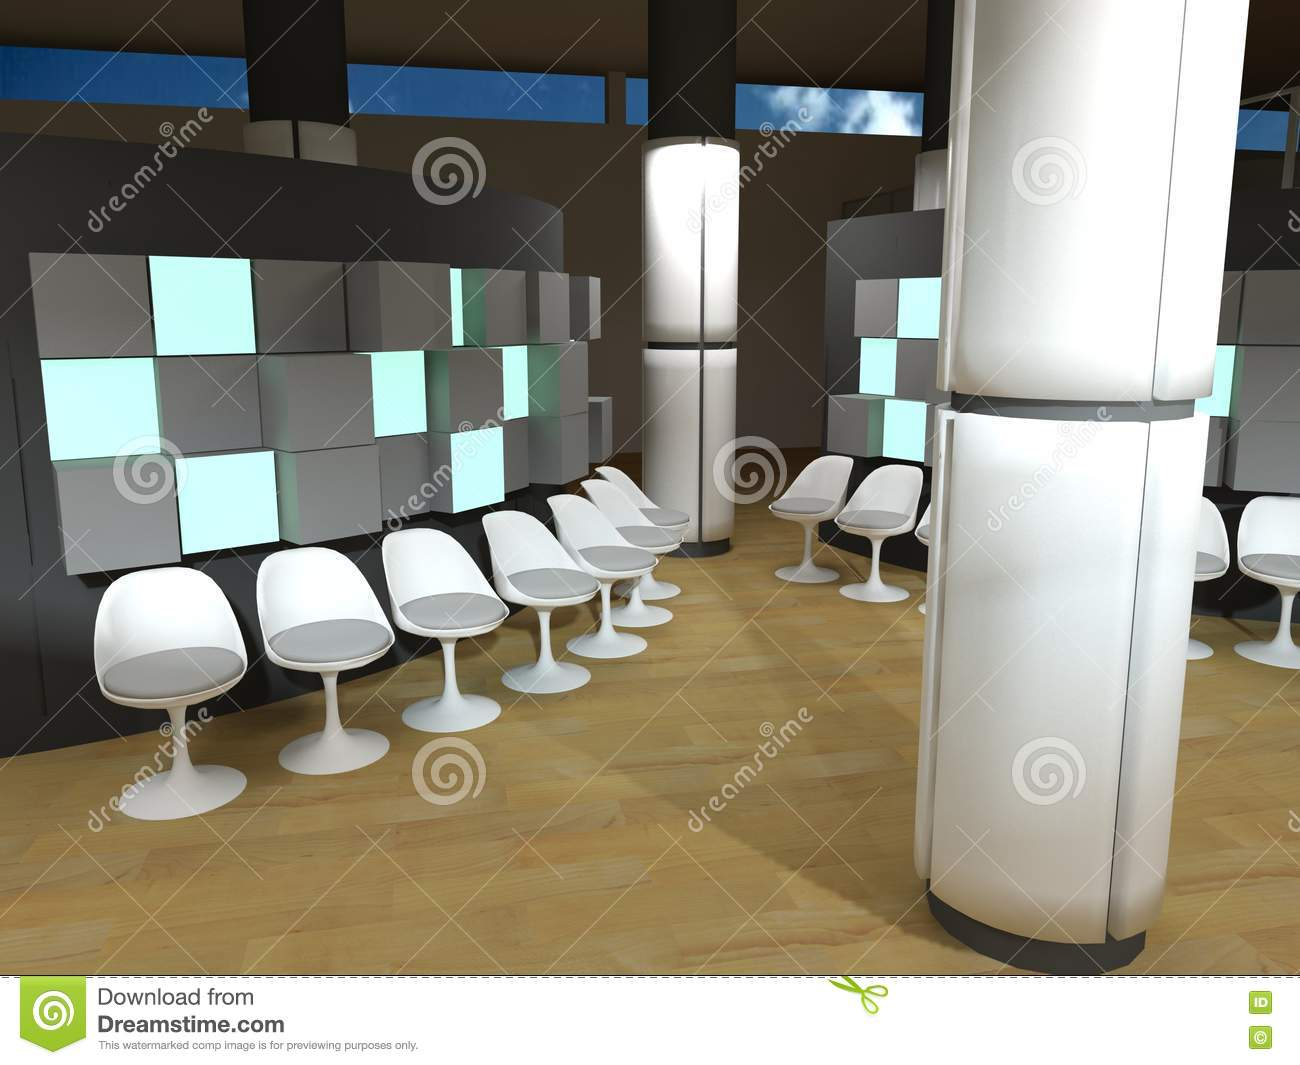 Hospital waiting room white chairs royalty free stock photography